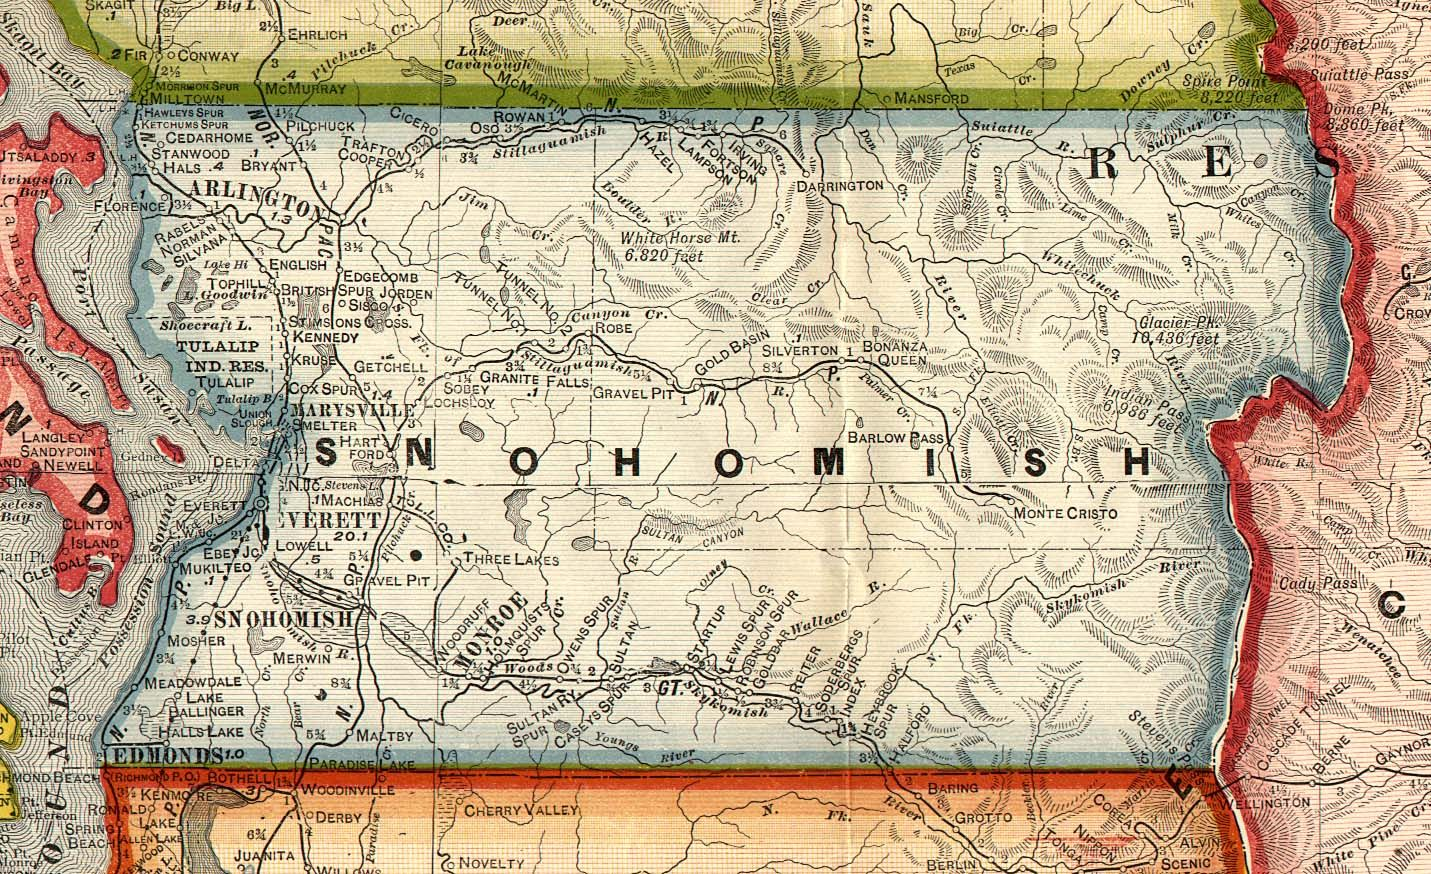 photo of snohomish | Snohomish County Archives Snohomish ... on jefferson county map, king county map, snohomish wa, city of marysville map, whatcom county map, everett map, kitsap county map, dayton county map, riley county ks map, pierce county map, washington map, mount vernon map, deer park county map, skagit county map, clark county map, bothell map, chelan county map, thurston county map, saint paul county map, seattle map,